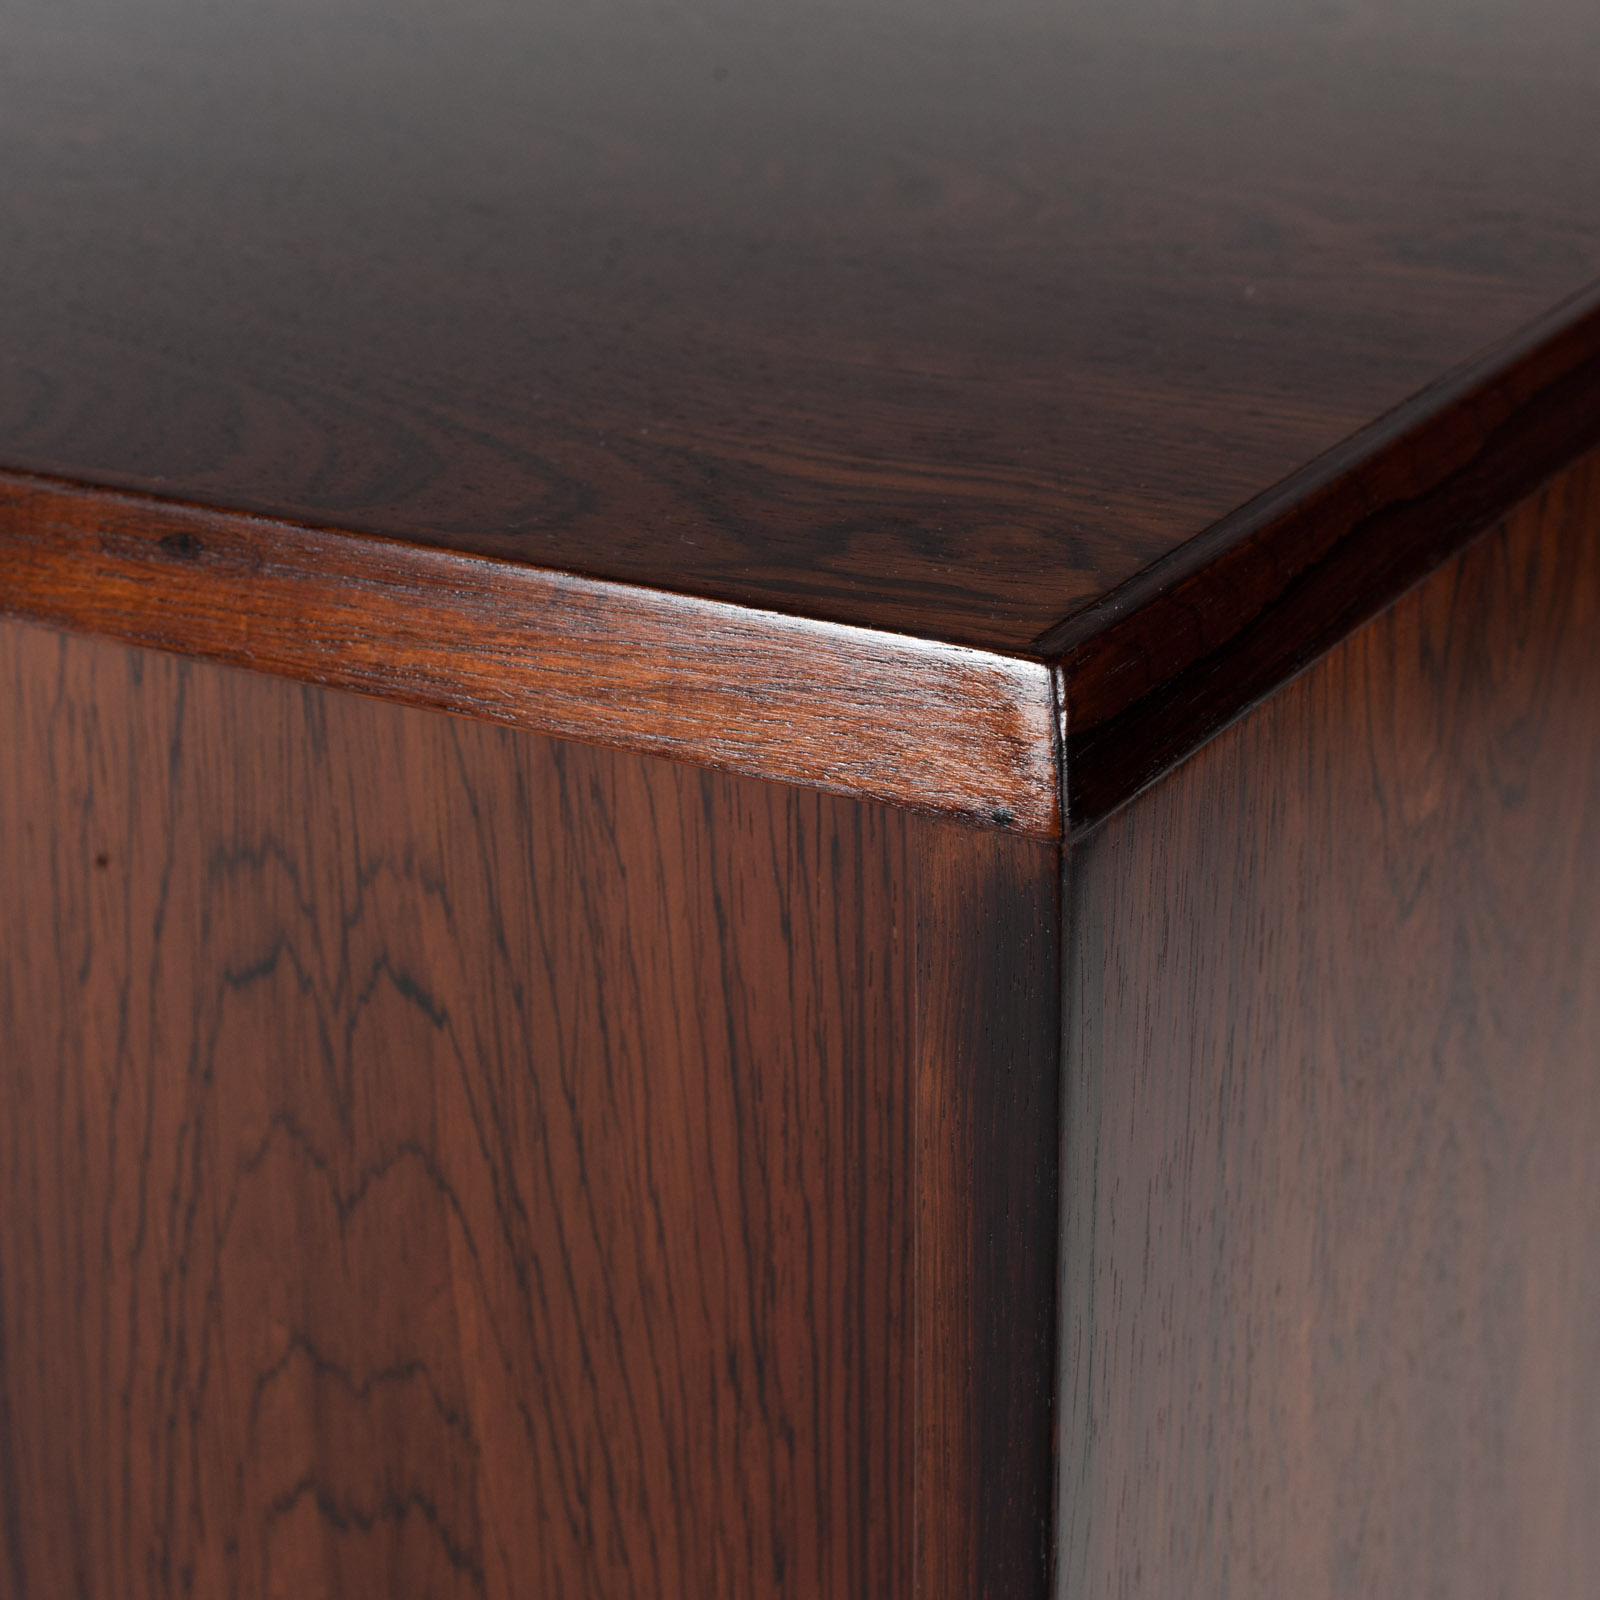 Sideboard In Rosewood With Oak Interior For Brouer Furniture, 1960s, Denmark13 2